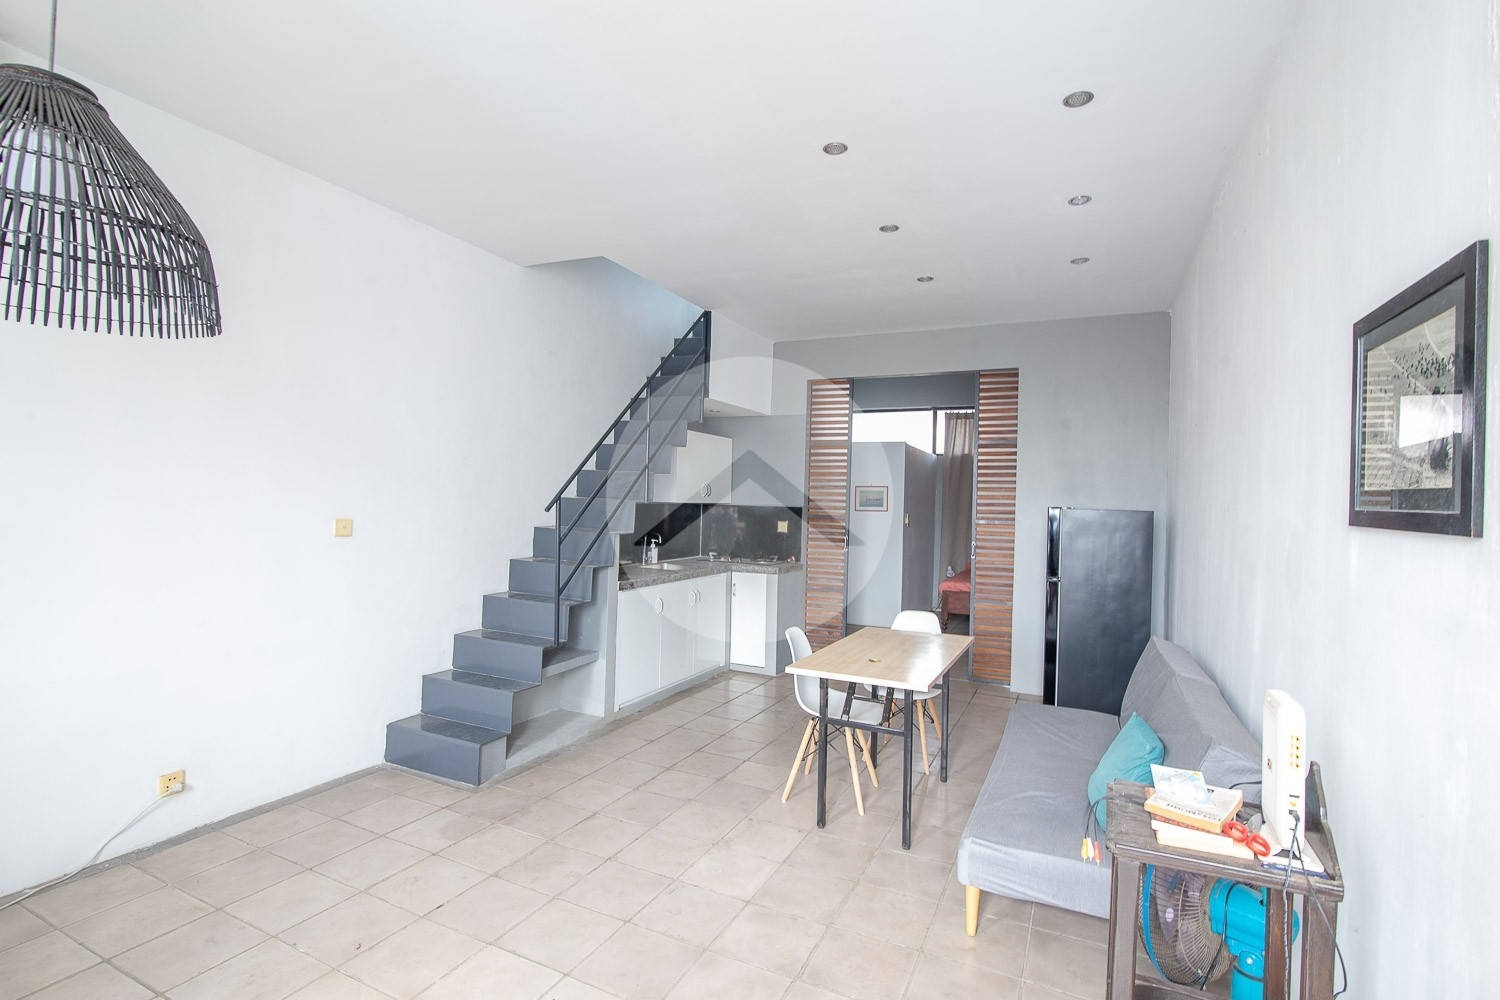 2 Bedroom Renovated House For Rent - Sangkat Olympic, Phnom Penh.